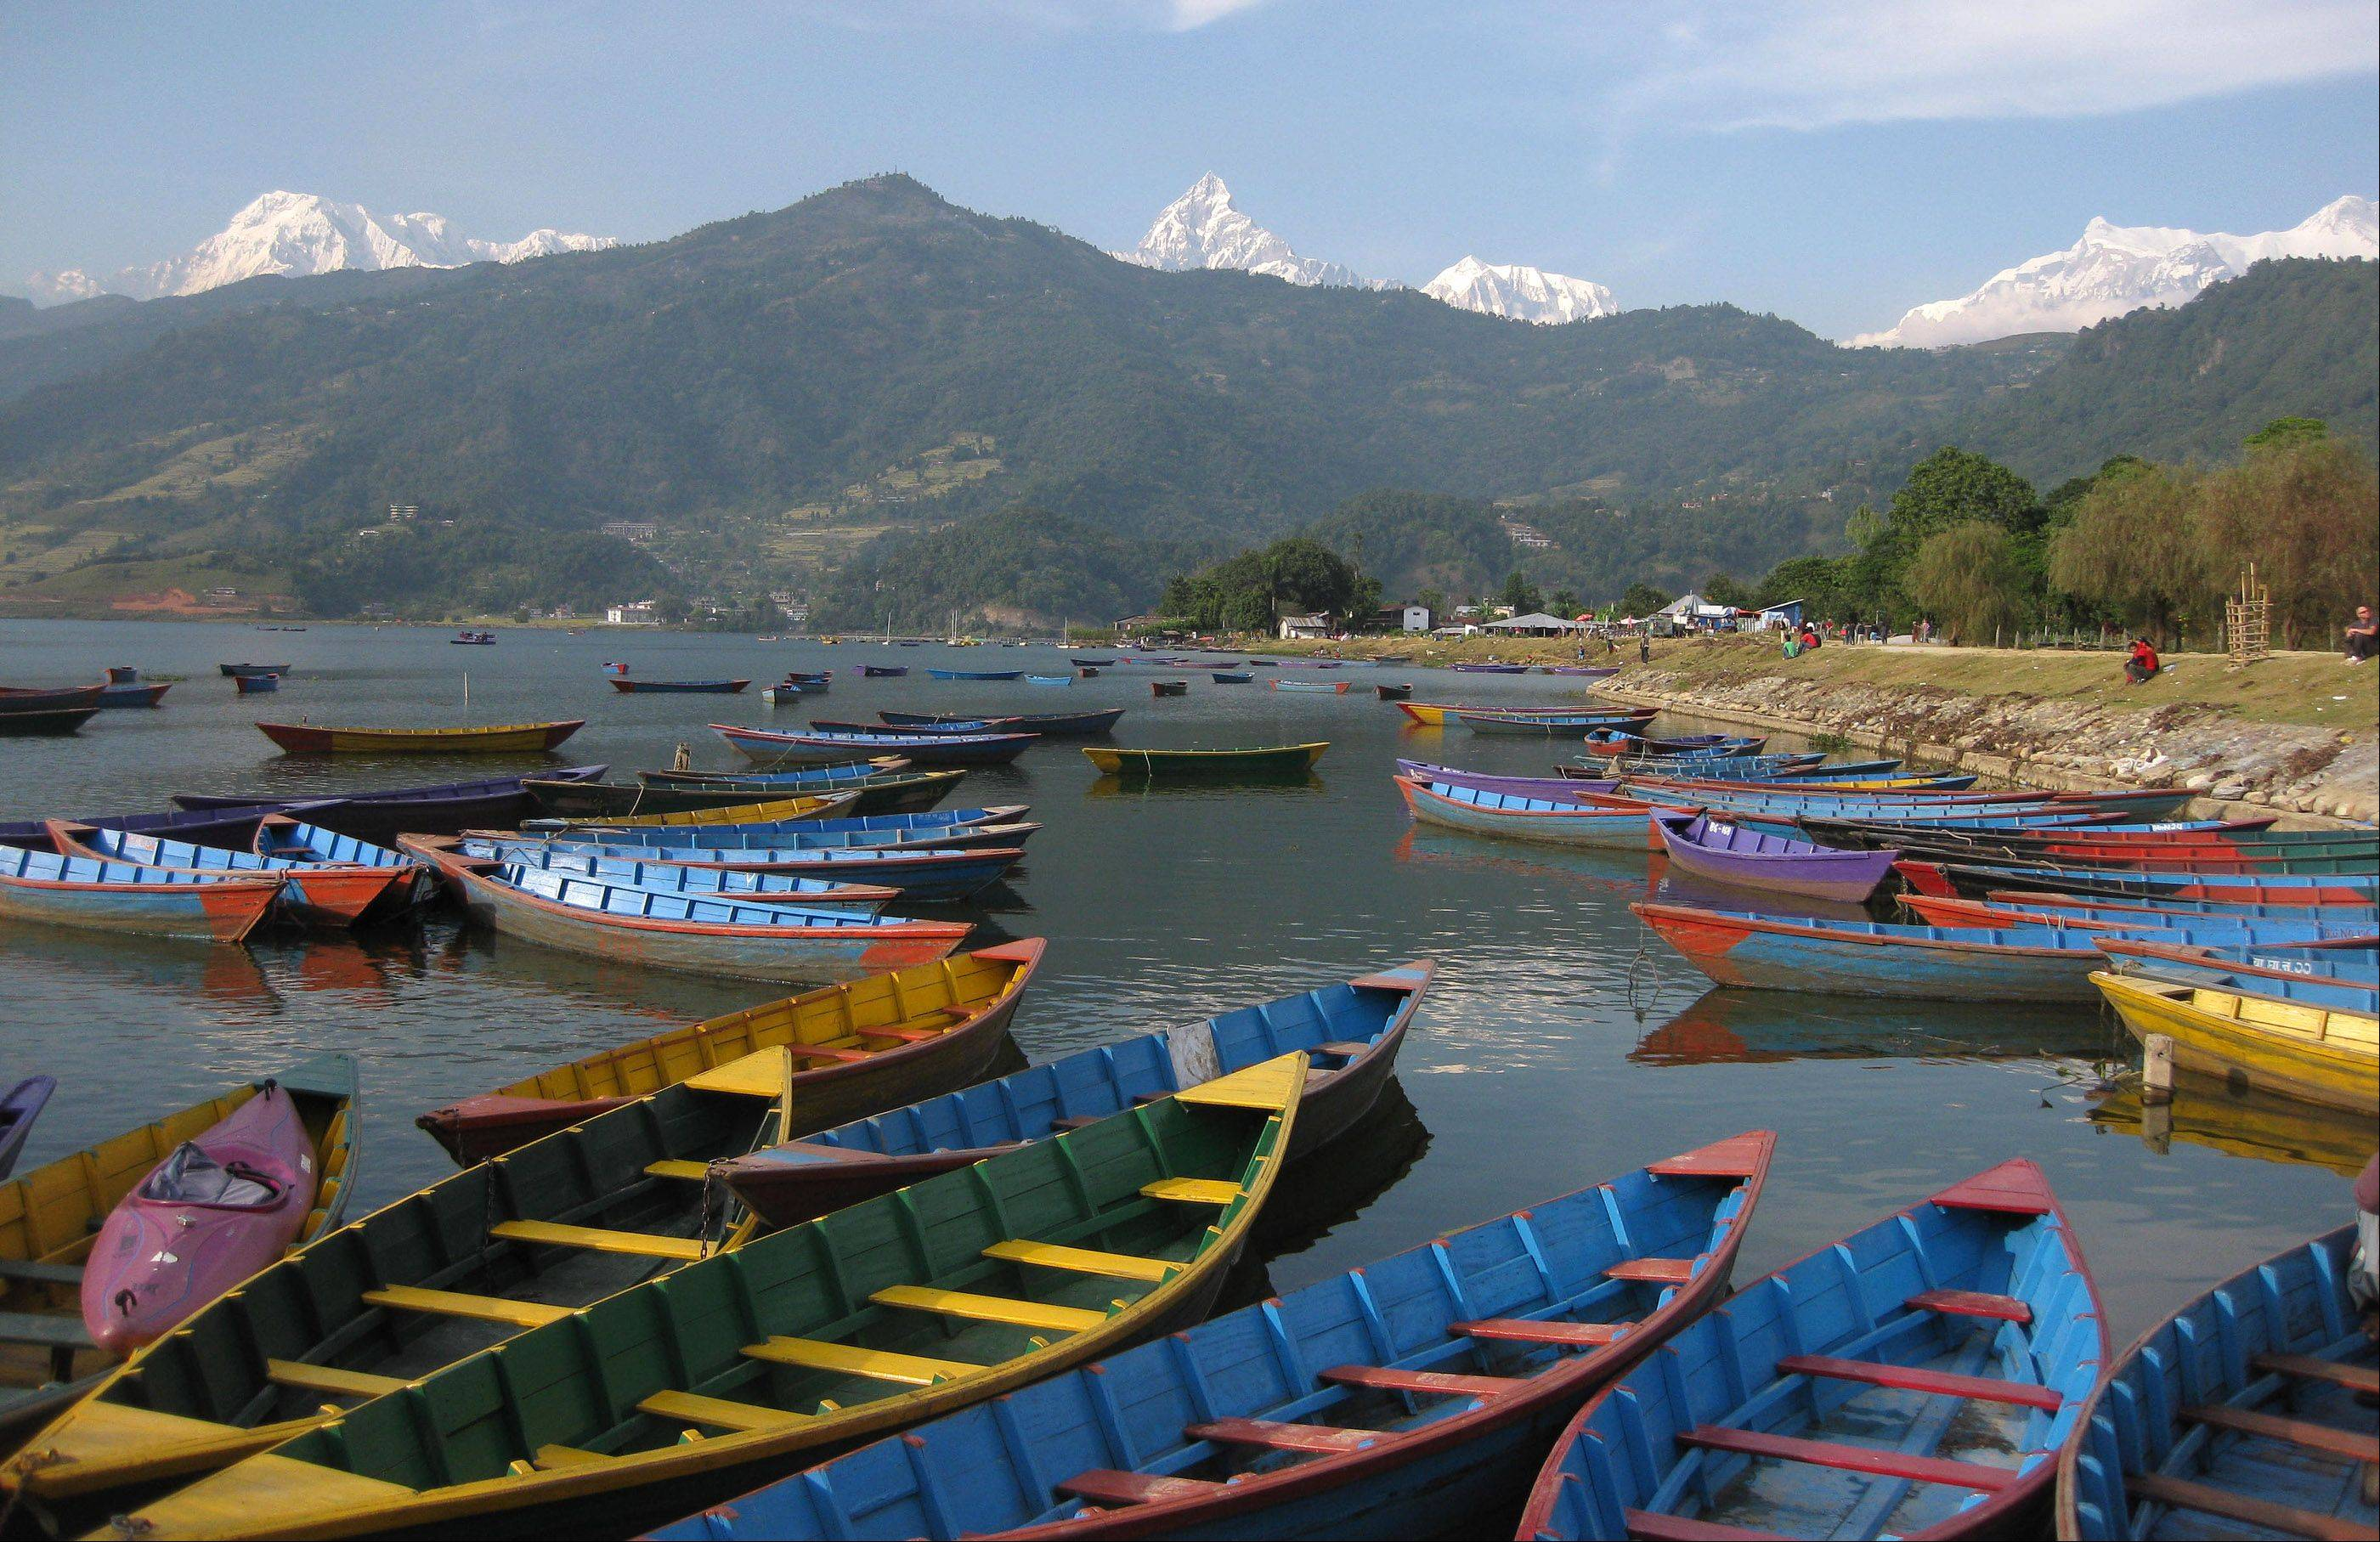 This was taken in November 2012 at Lake Phewa, Pokhara, Nepal with Himalaya Mountains of the Annapurna Sanctuary in the background, following a trek to the Annapurna Base Camp.